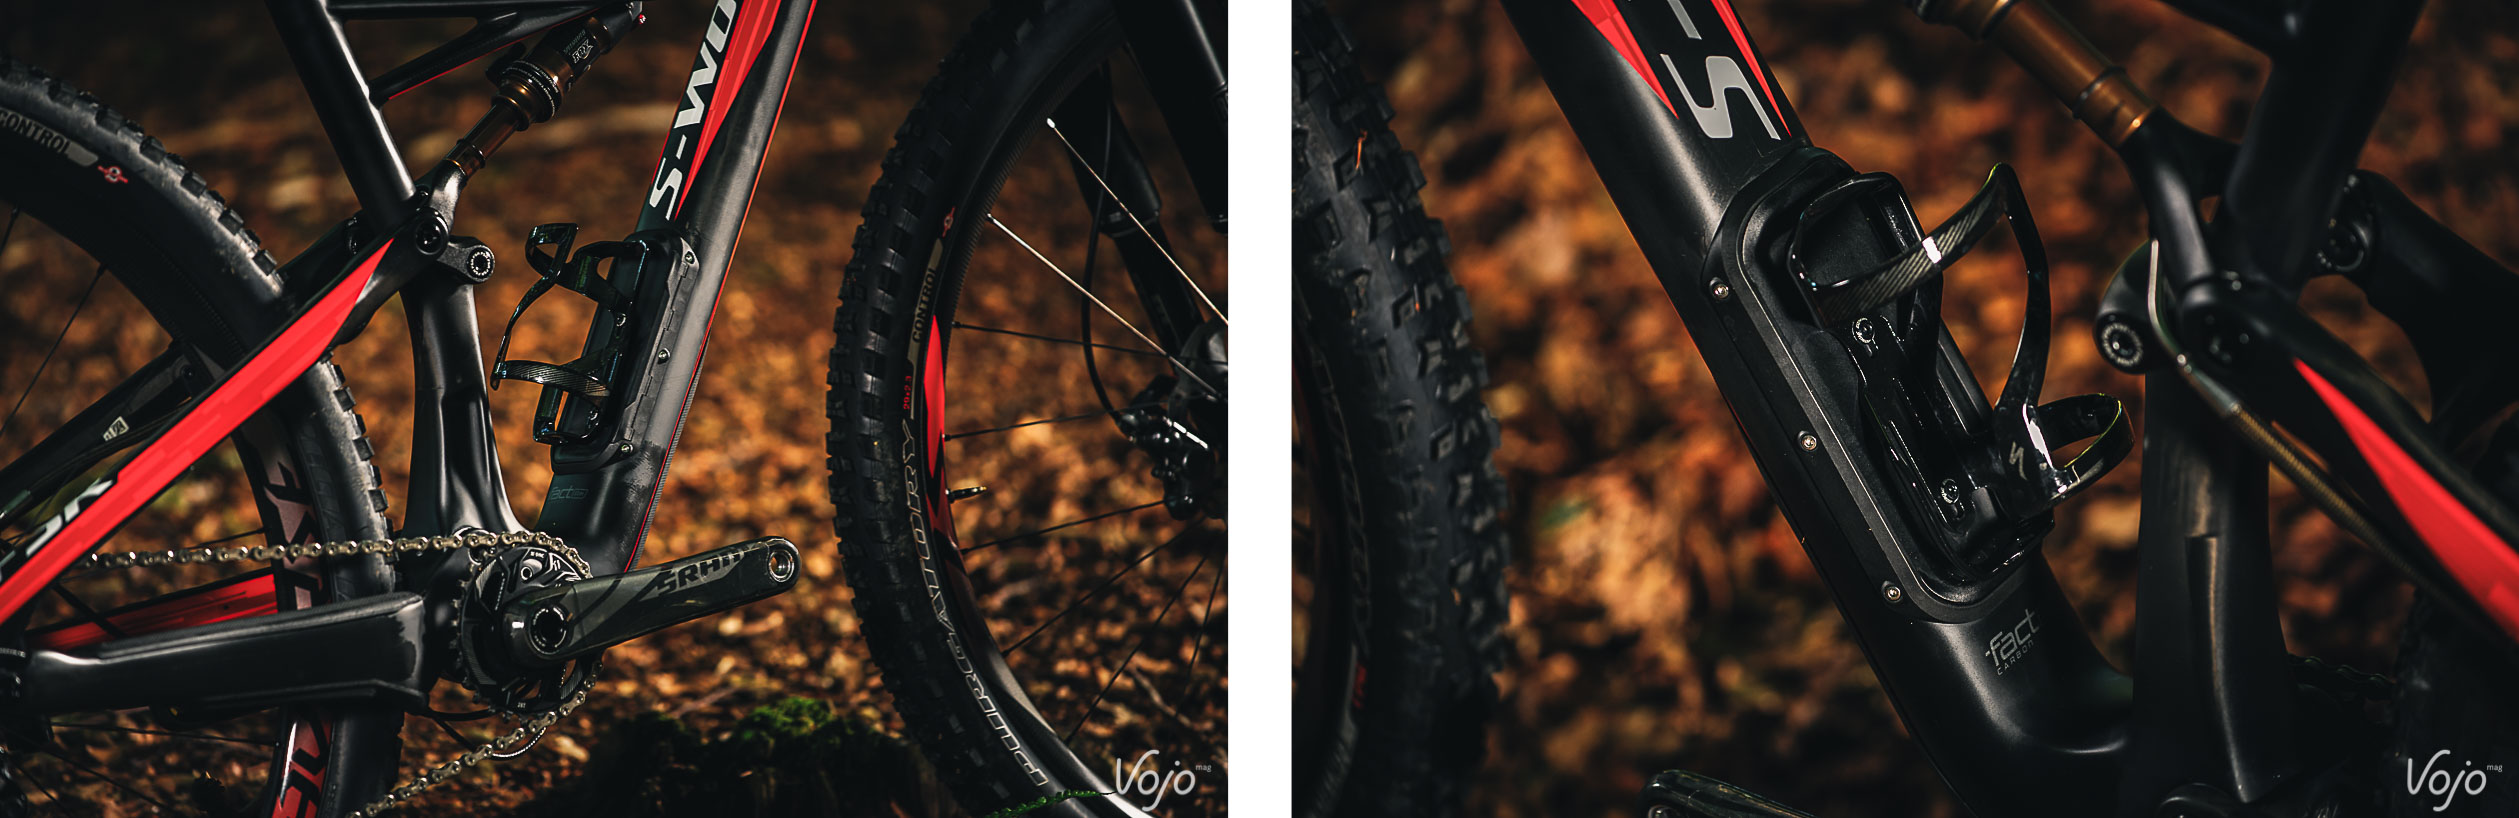 5-Specialized_Camber_2016_Copyright_OBeart_VojoMag